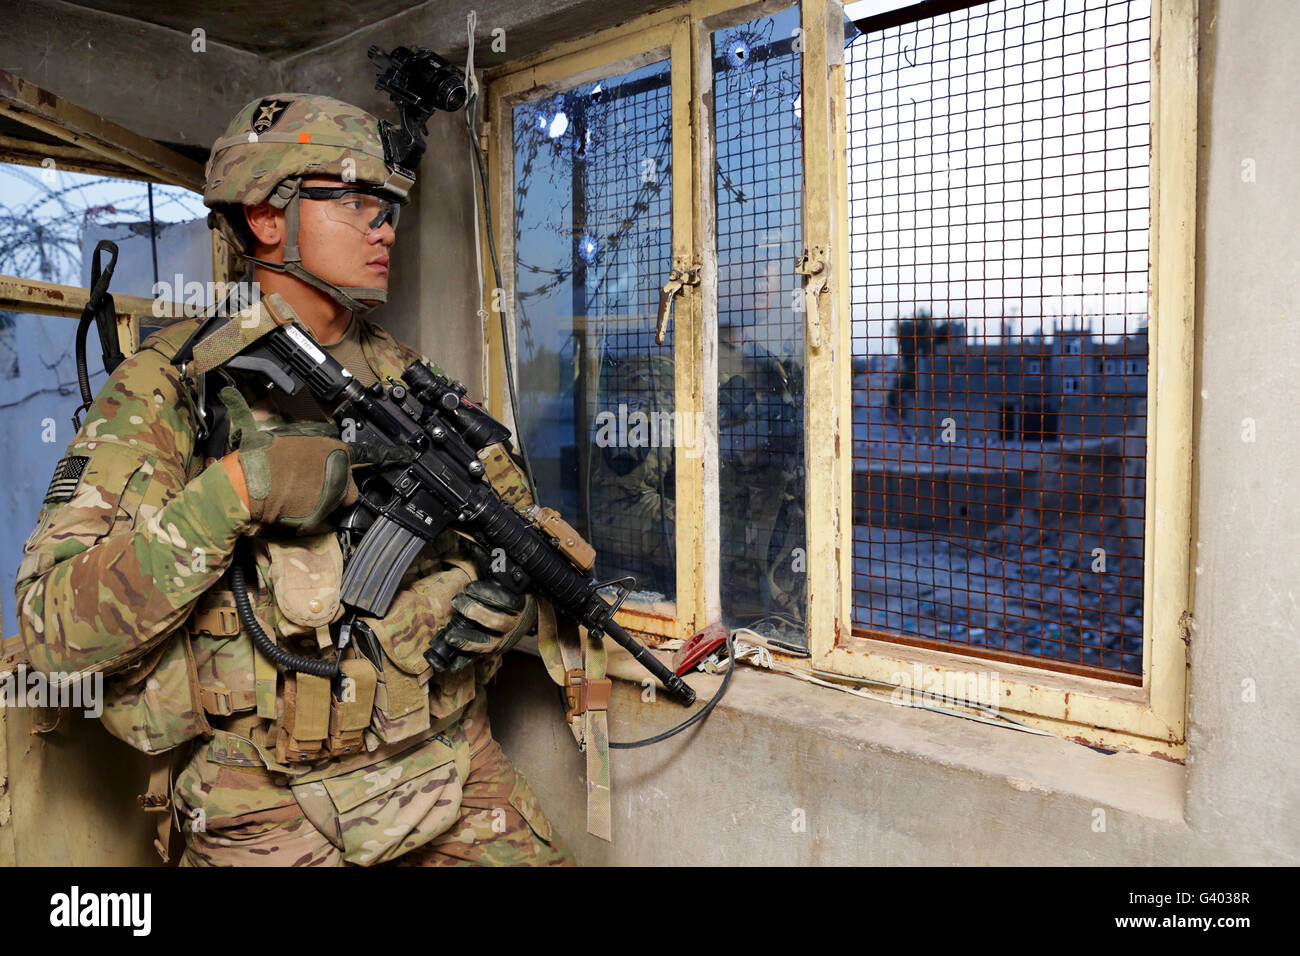 U.S. Army Specialist monitors his surroundings from a guard post. - Stock Image